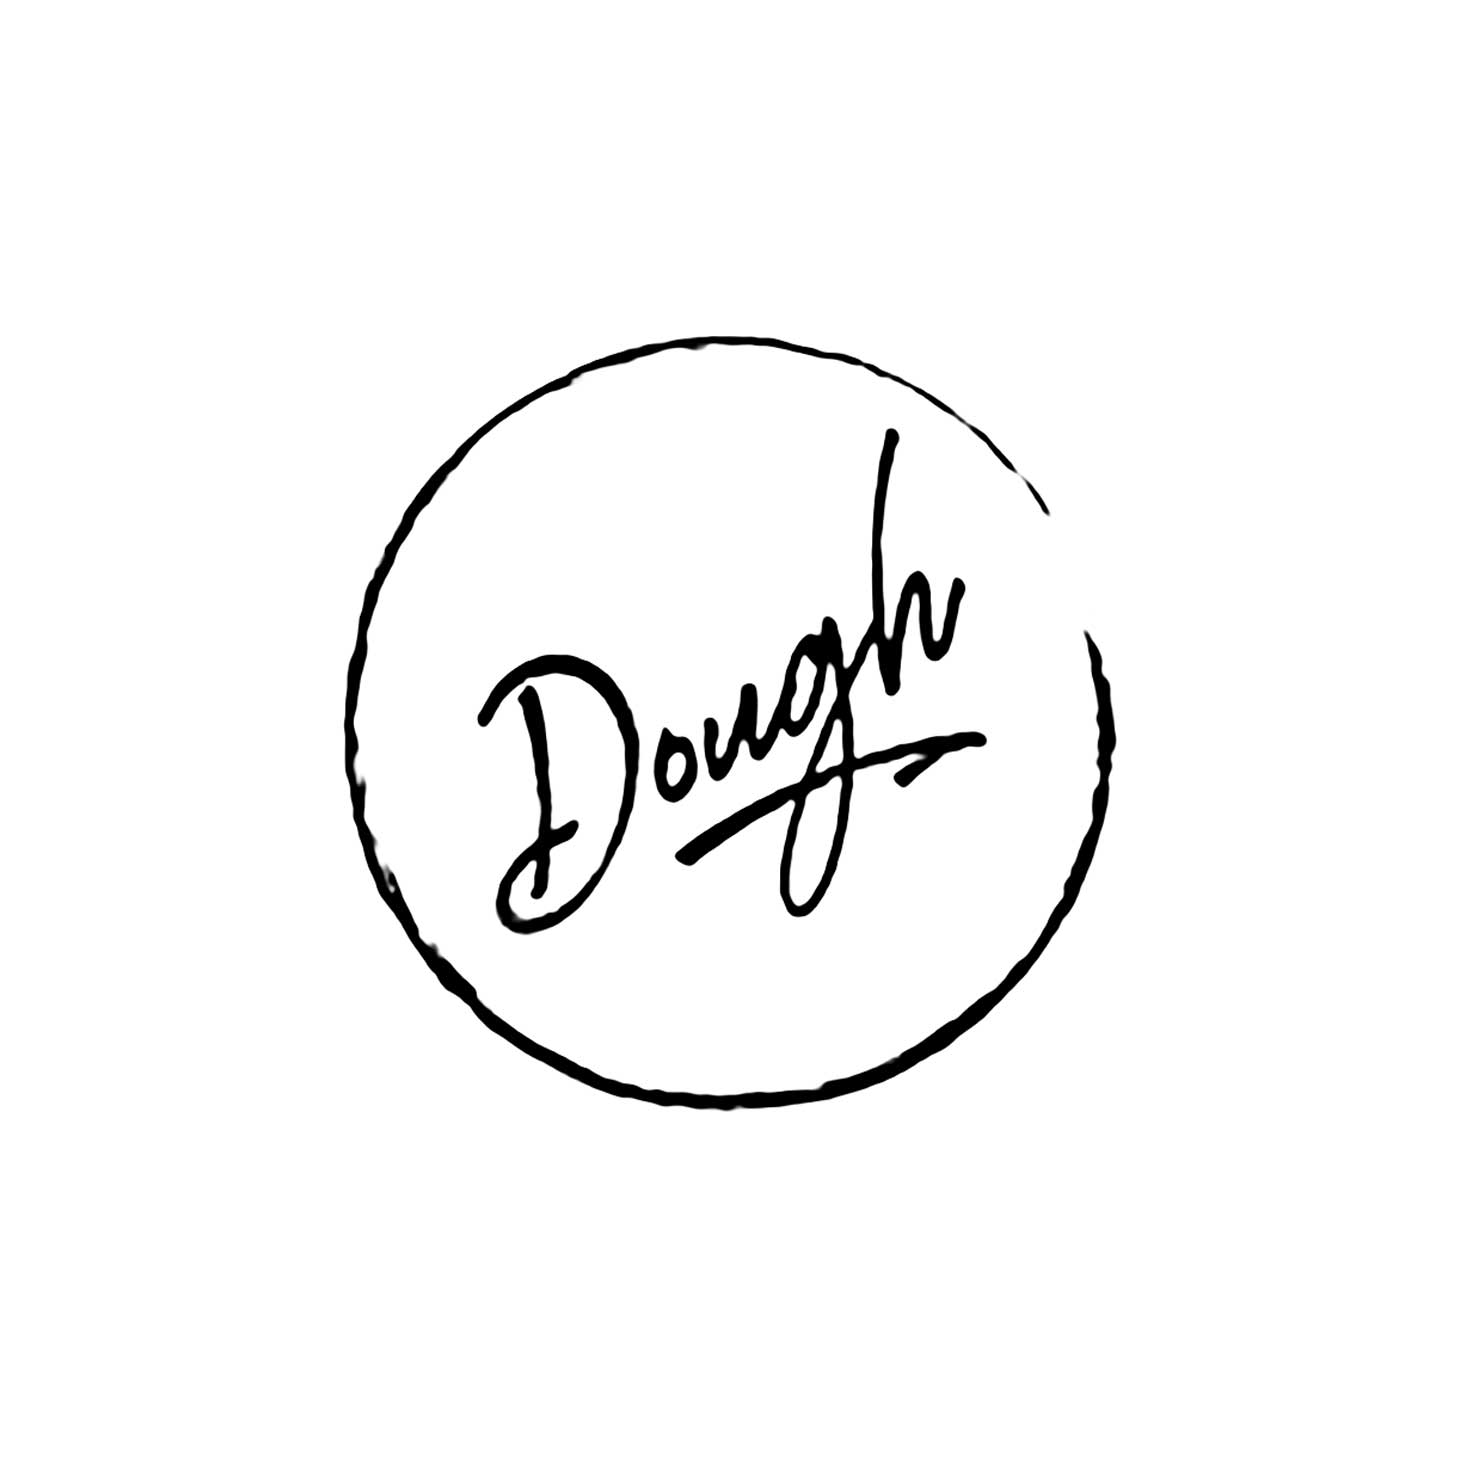 dough_logo.jpg